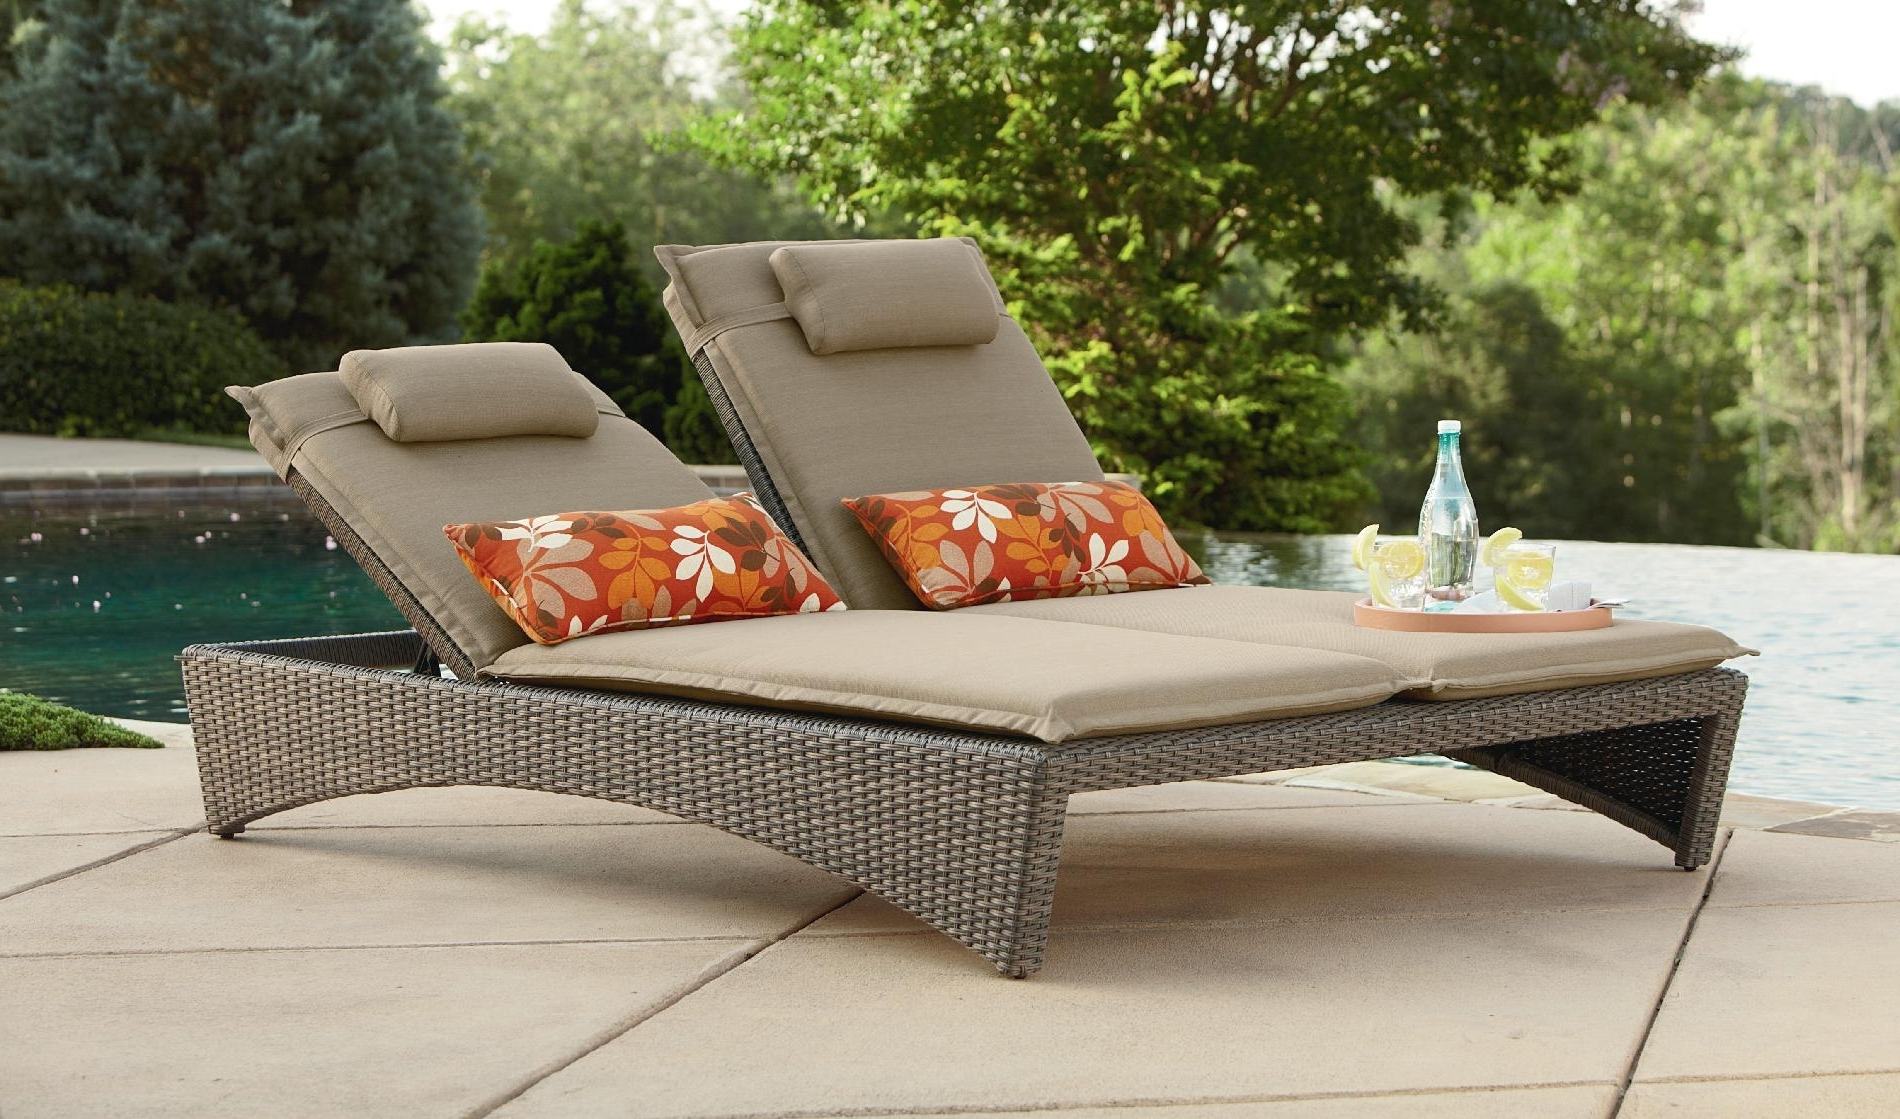 2017 Chaise Lounge Chairs For Pool Area In Picture 3 Of 35 – Walmart Patio Lounge Chairs Luxury Patio (View 1 of 15)